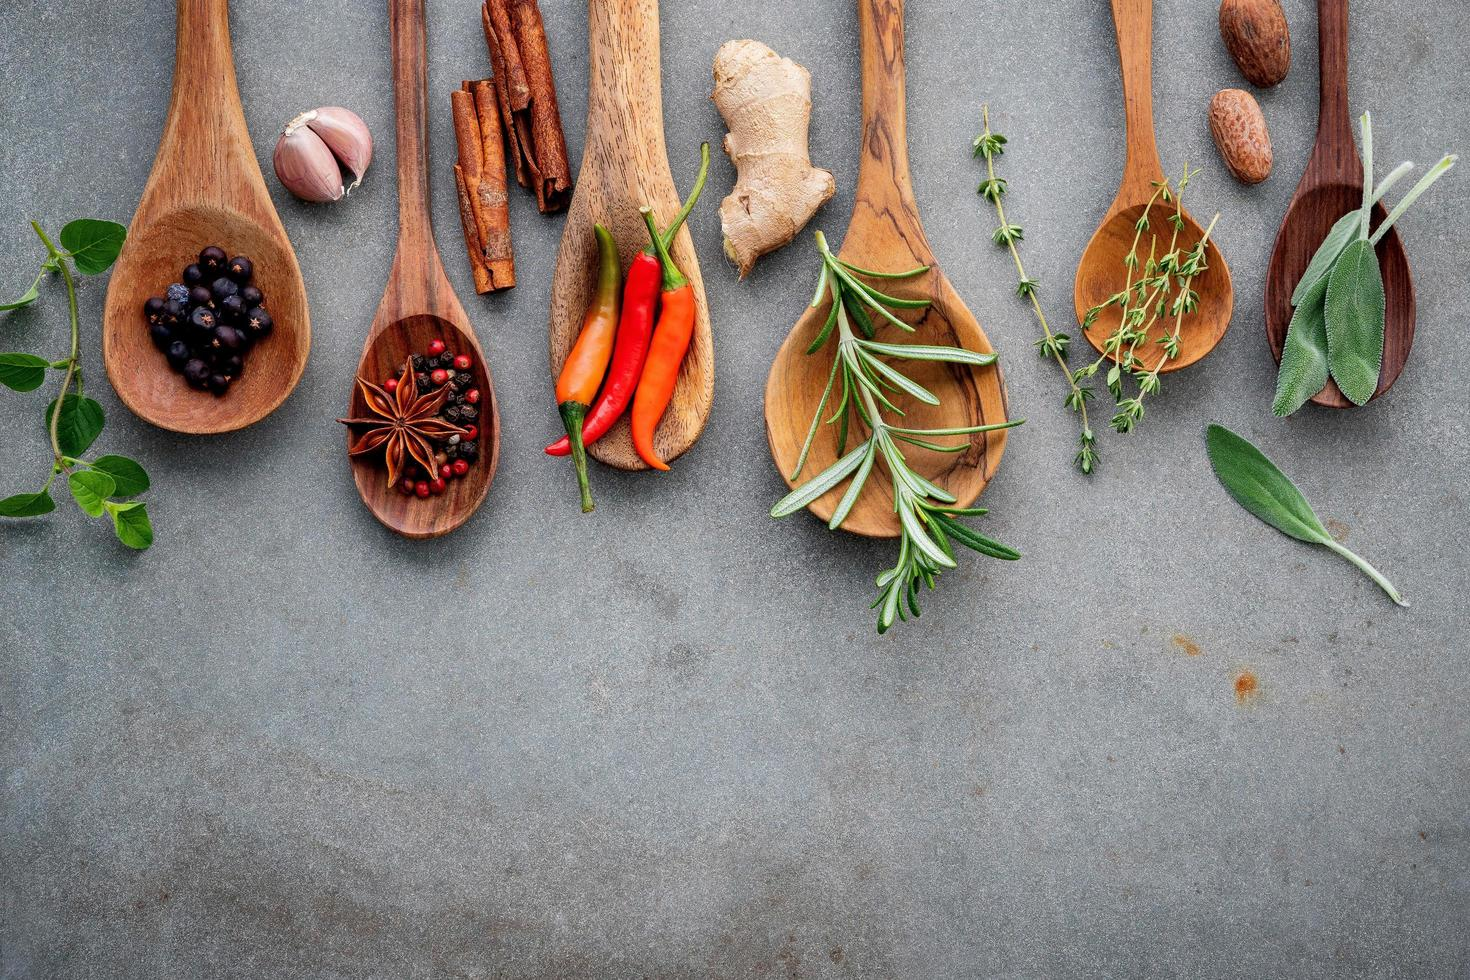 Spices and herbs in wooden spoons photo